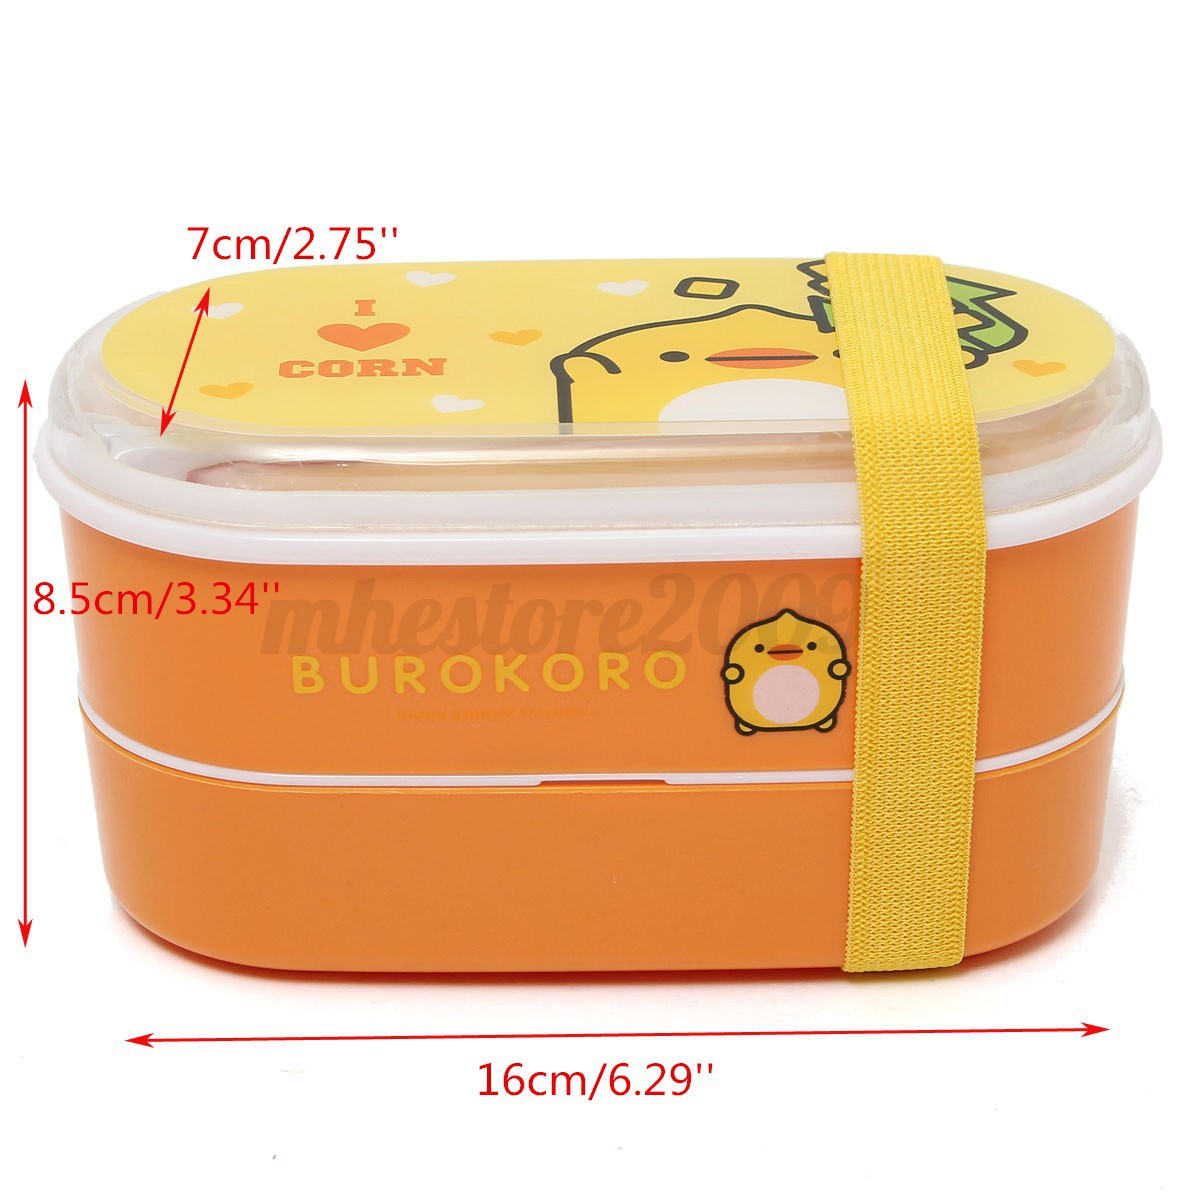 student cartoon lunch box food container storage portable bento box chopsticks. Black Bedroom Furniture Sets. Home Design Ideas